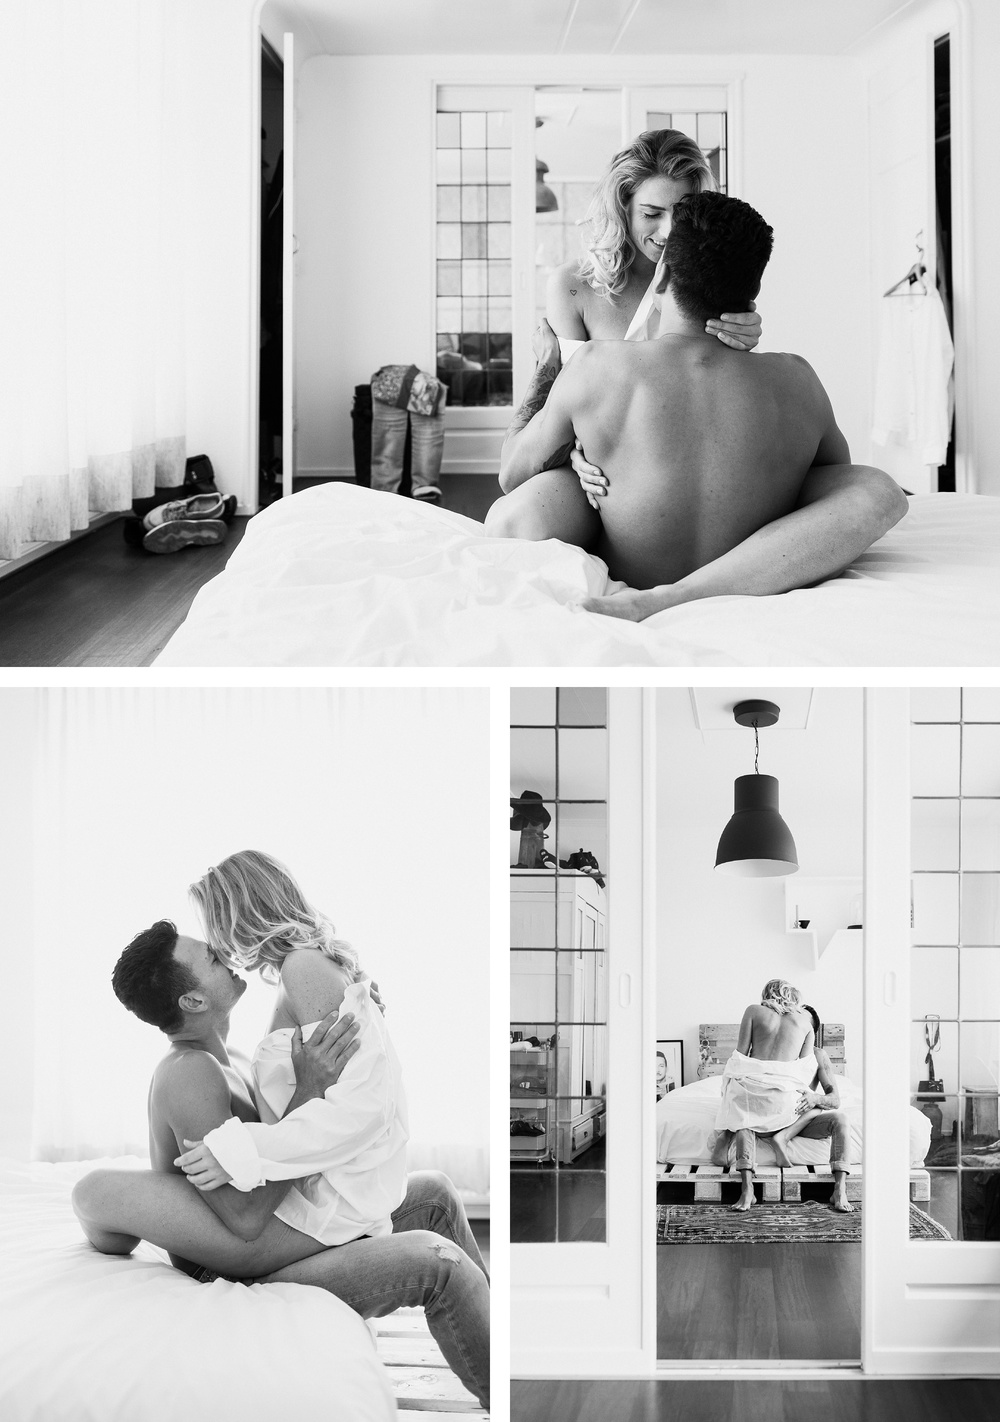 boudoir-couple-loveshoot-rotterdam-3.jpg